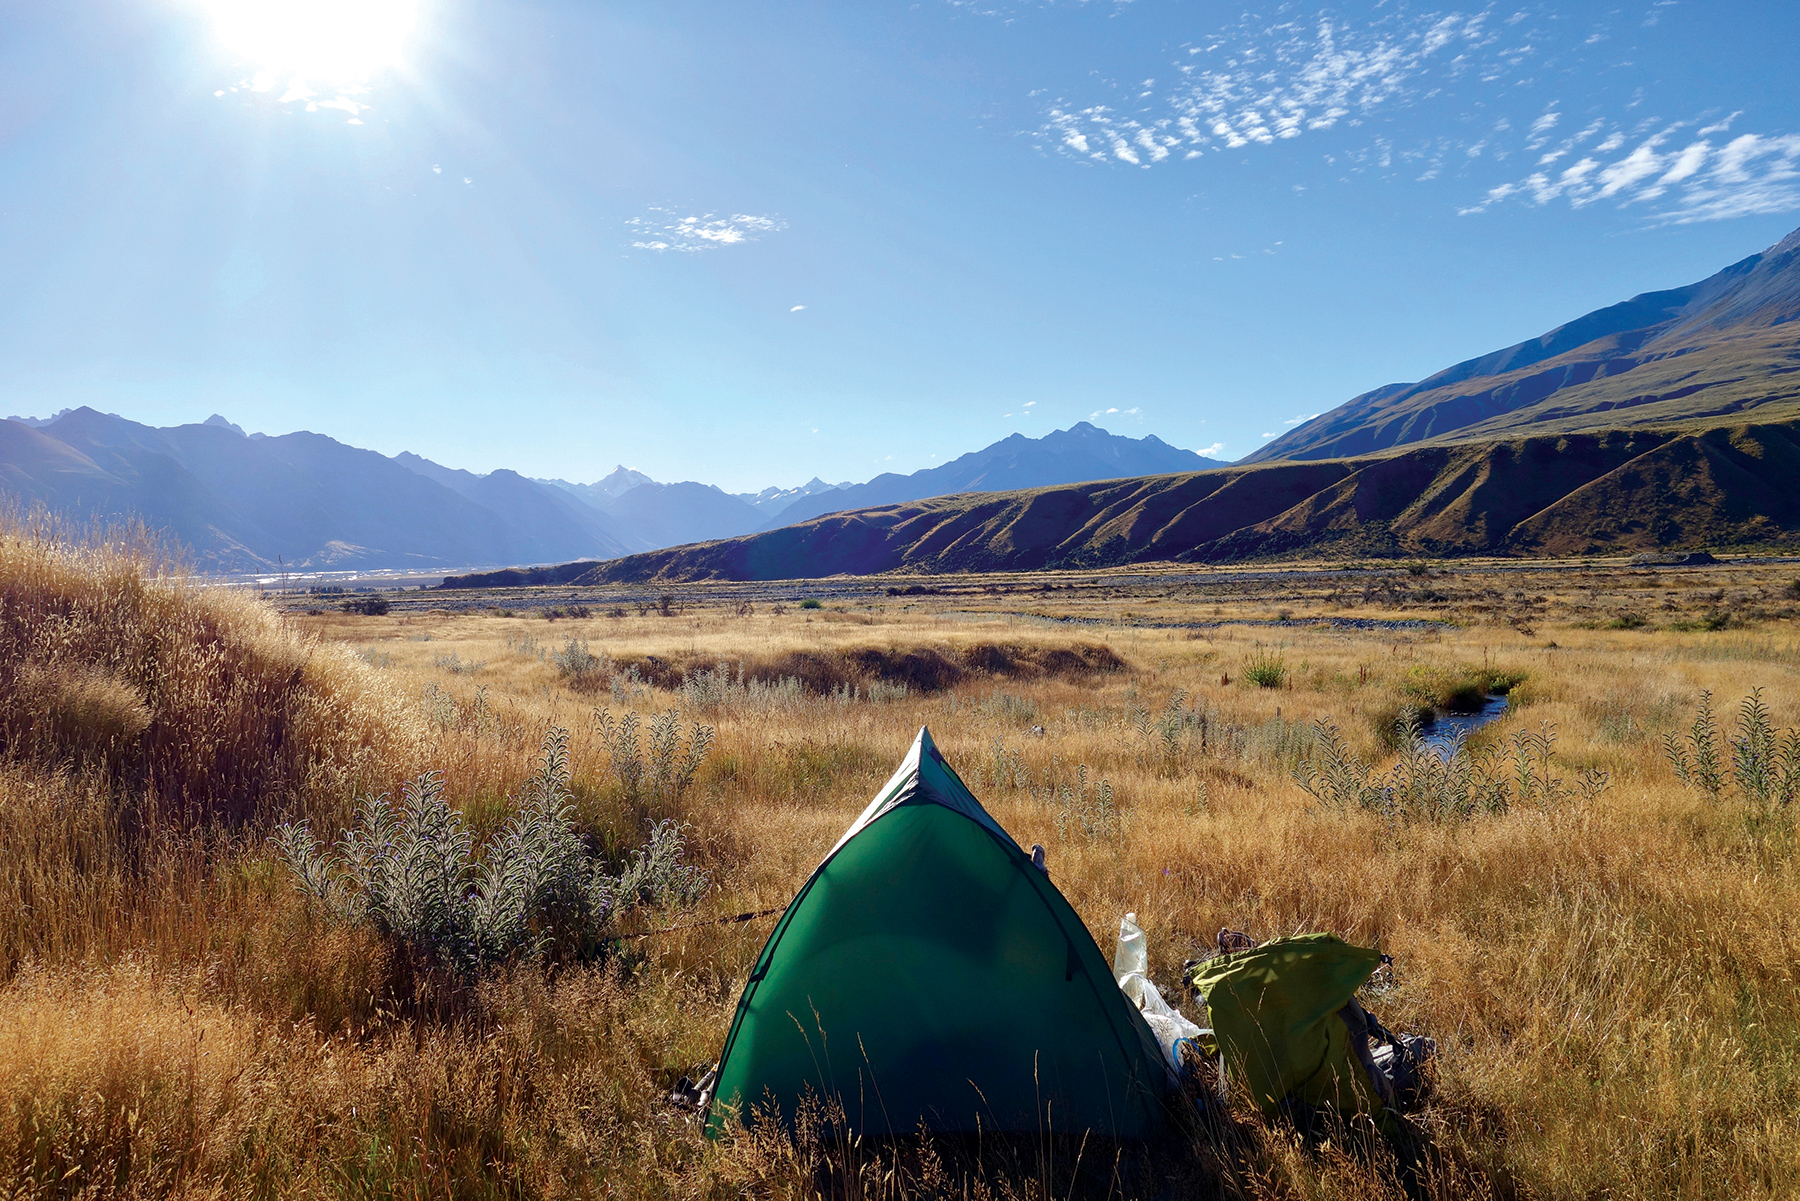 Just the tent, yourself and a few essentials